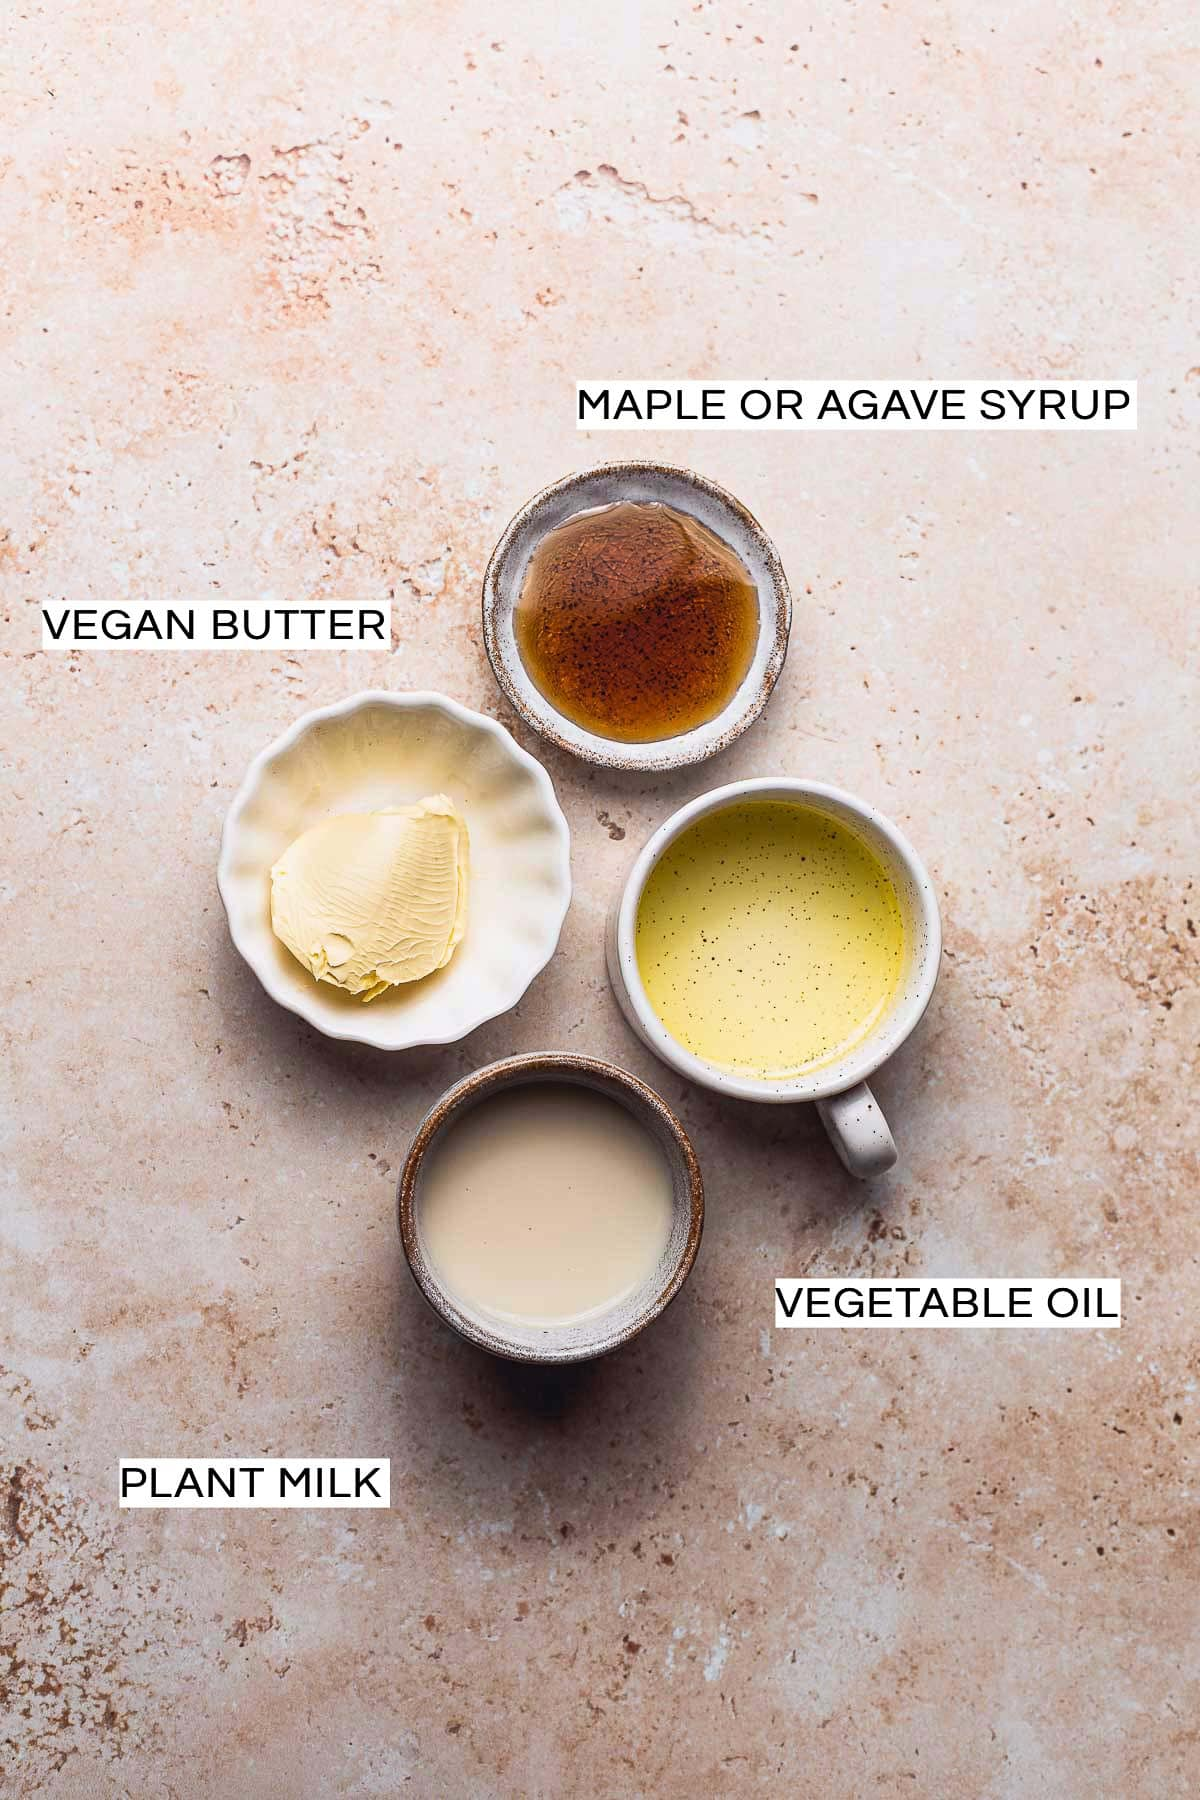 Four staple vegan egg wash ingredients in bowls on a rusty background.